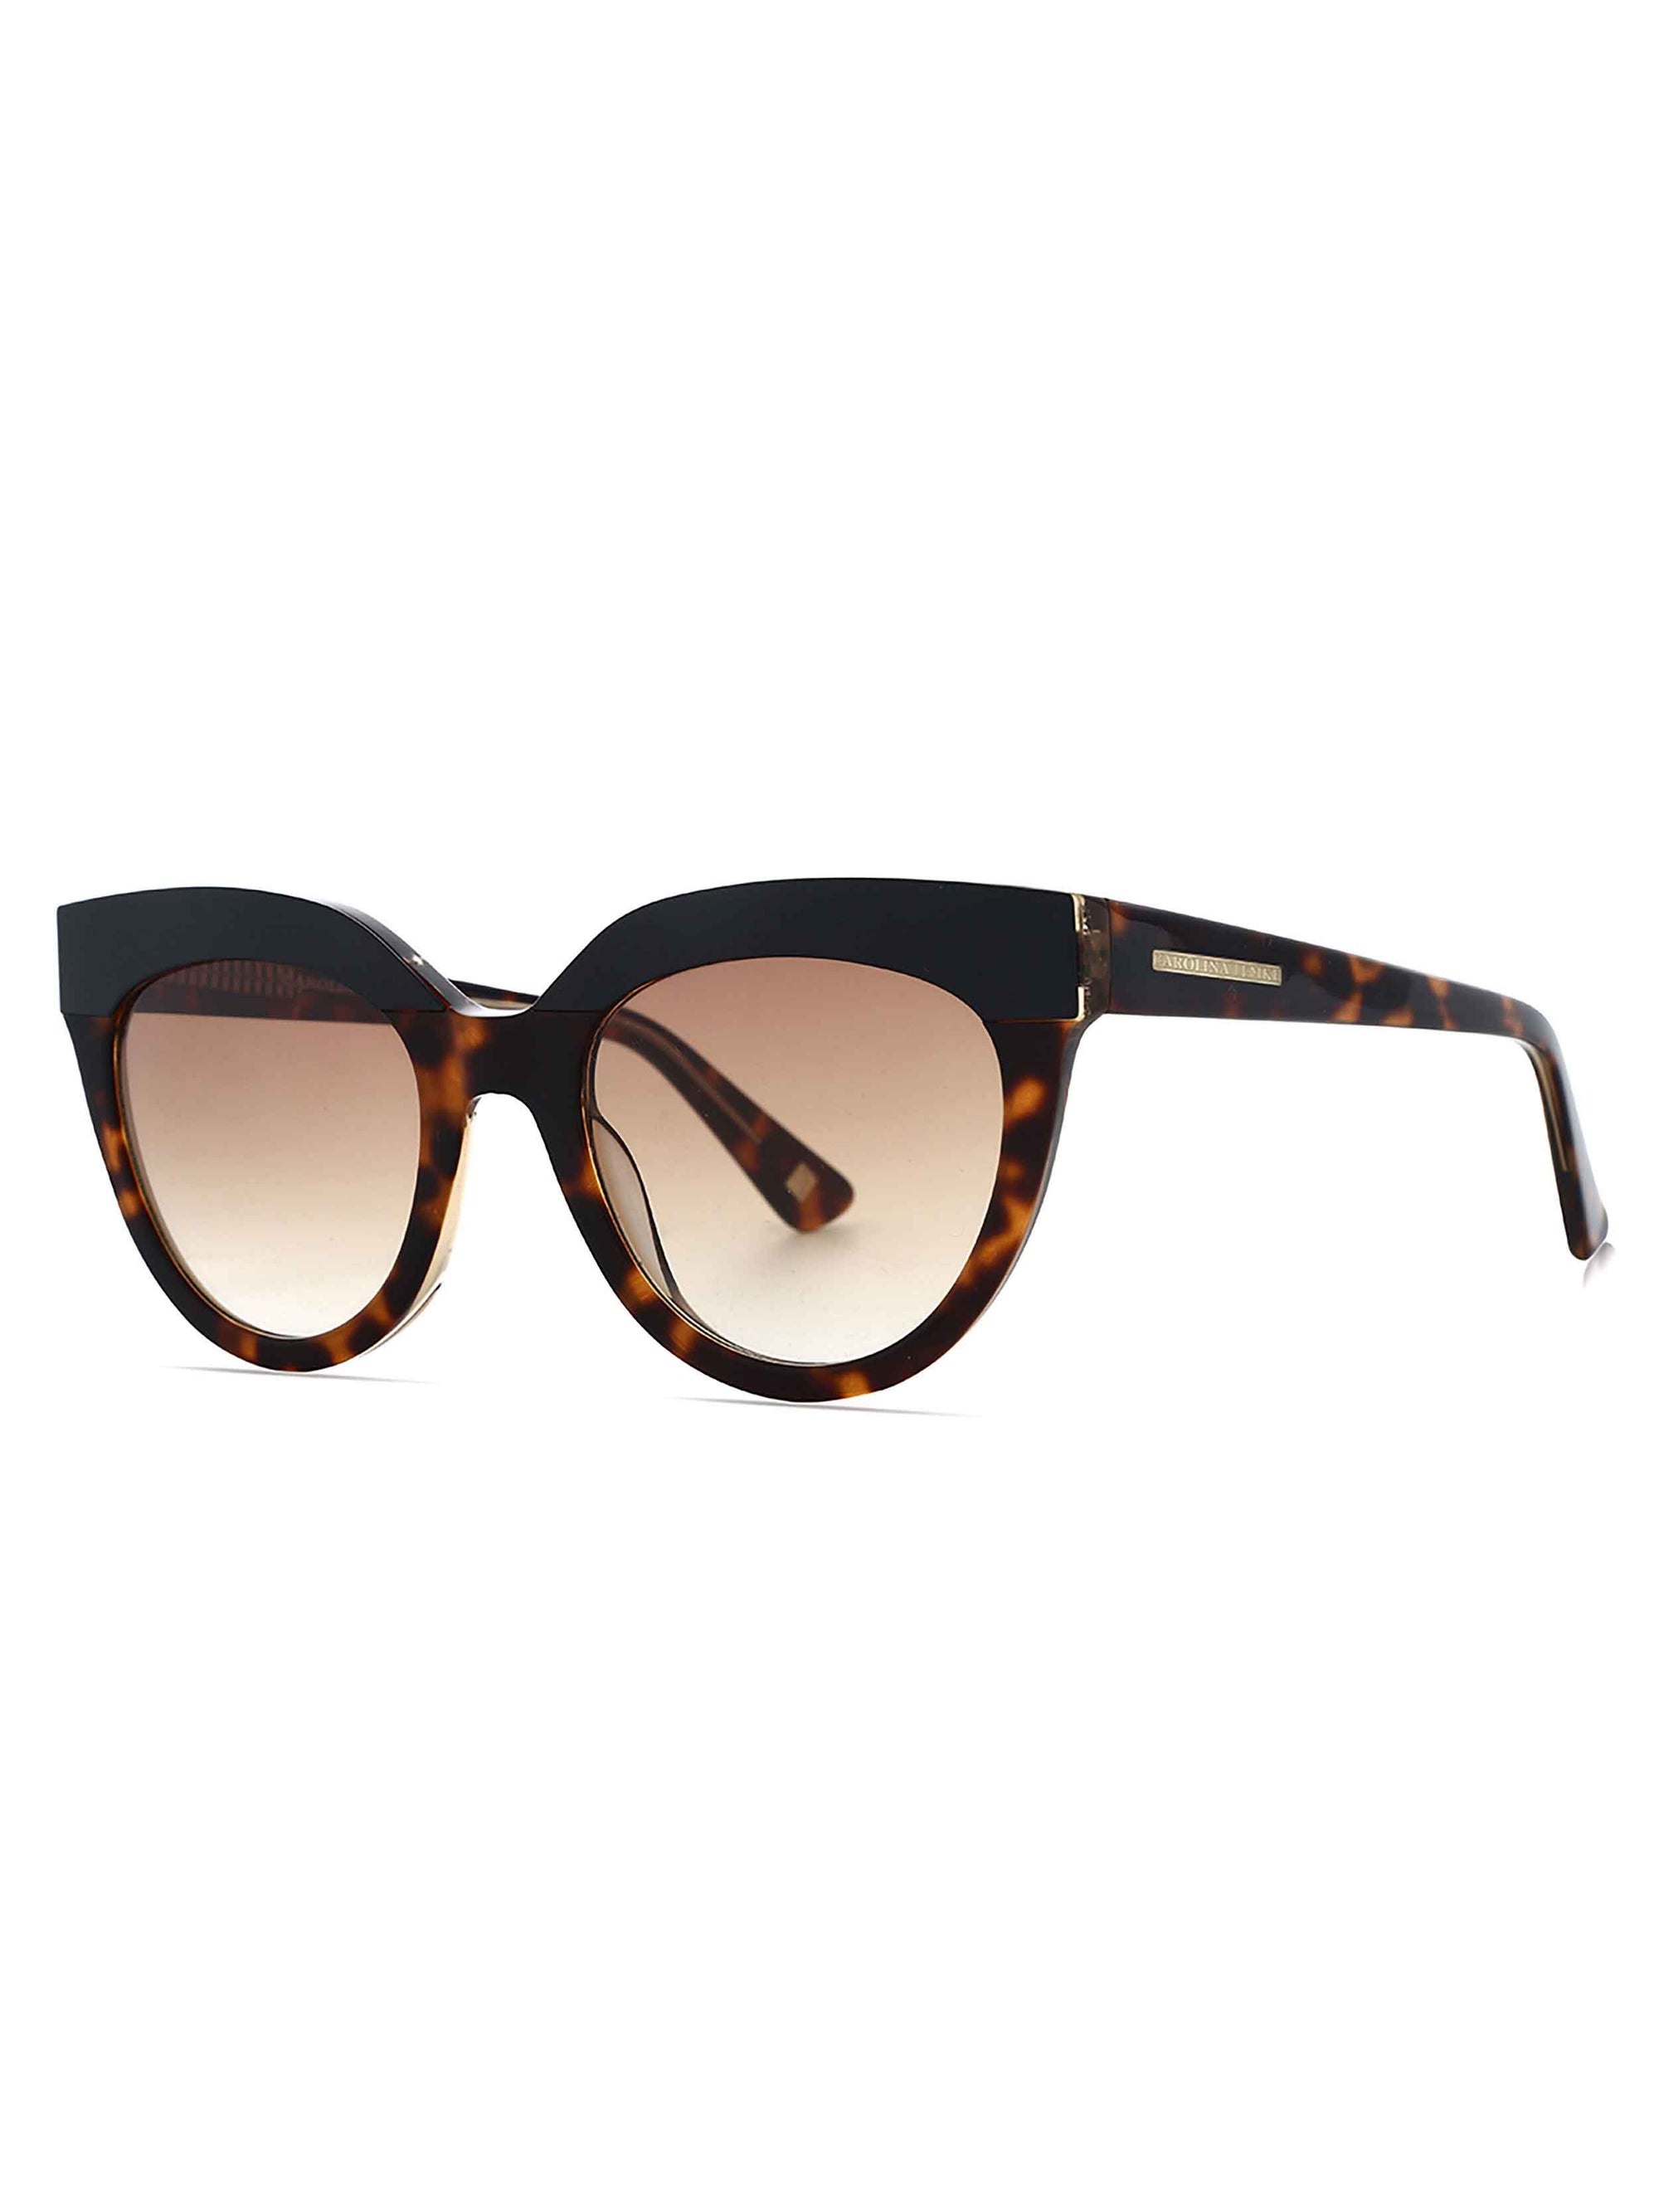 Lentes Carolina Lemke CL7610 02